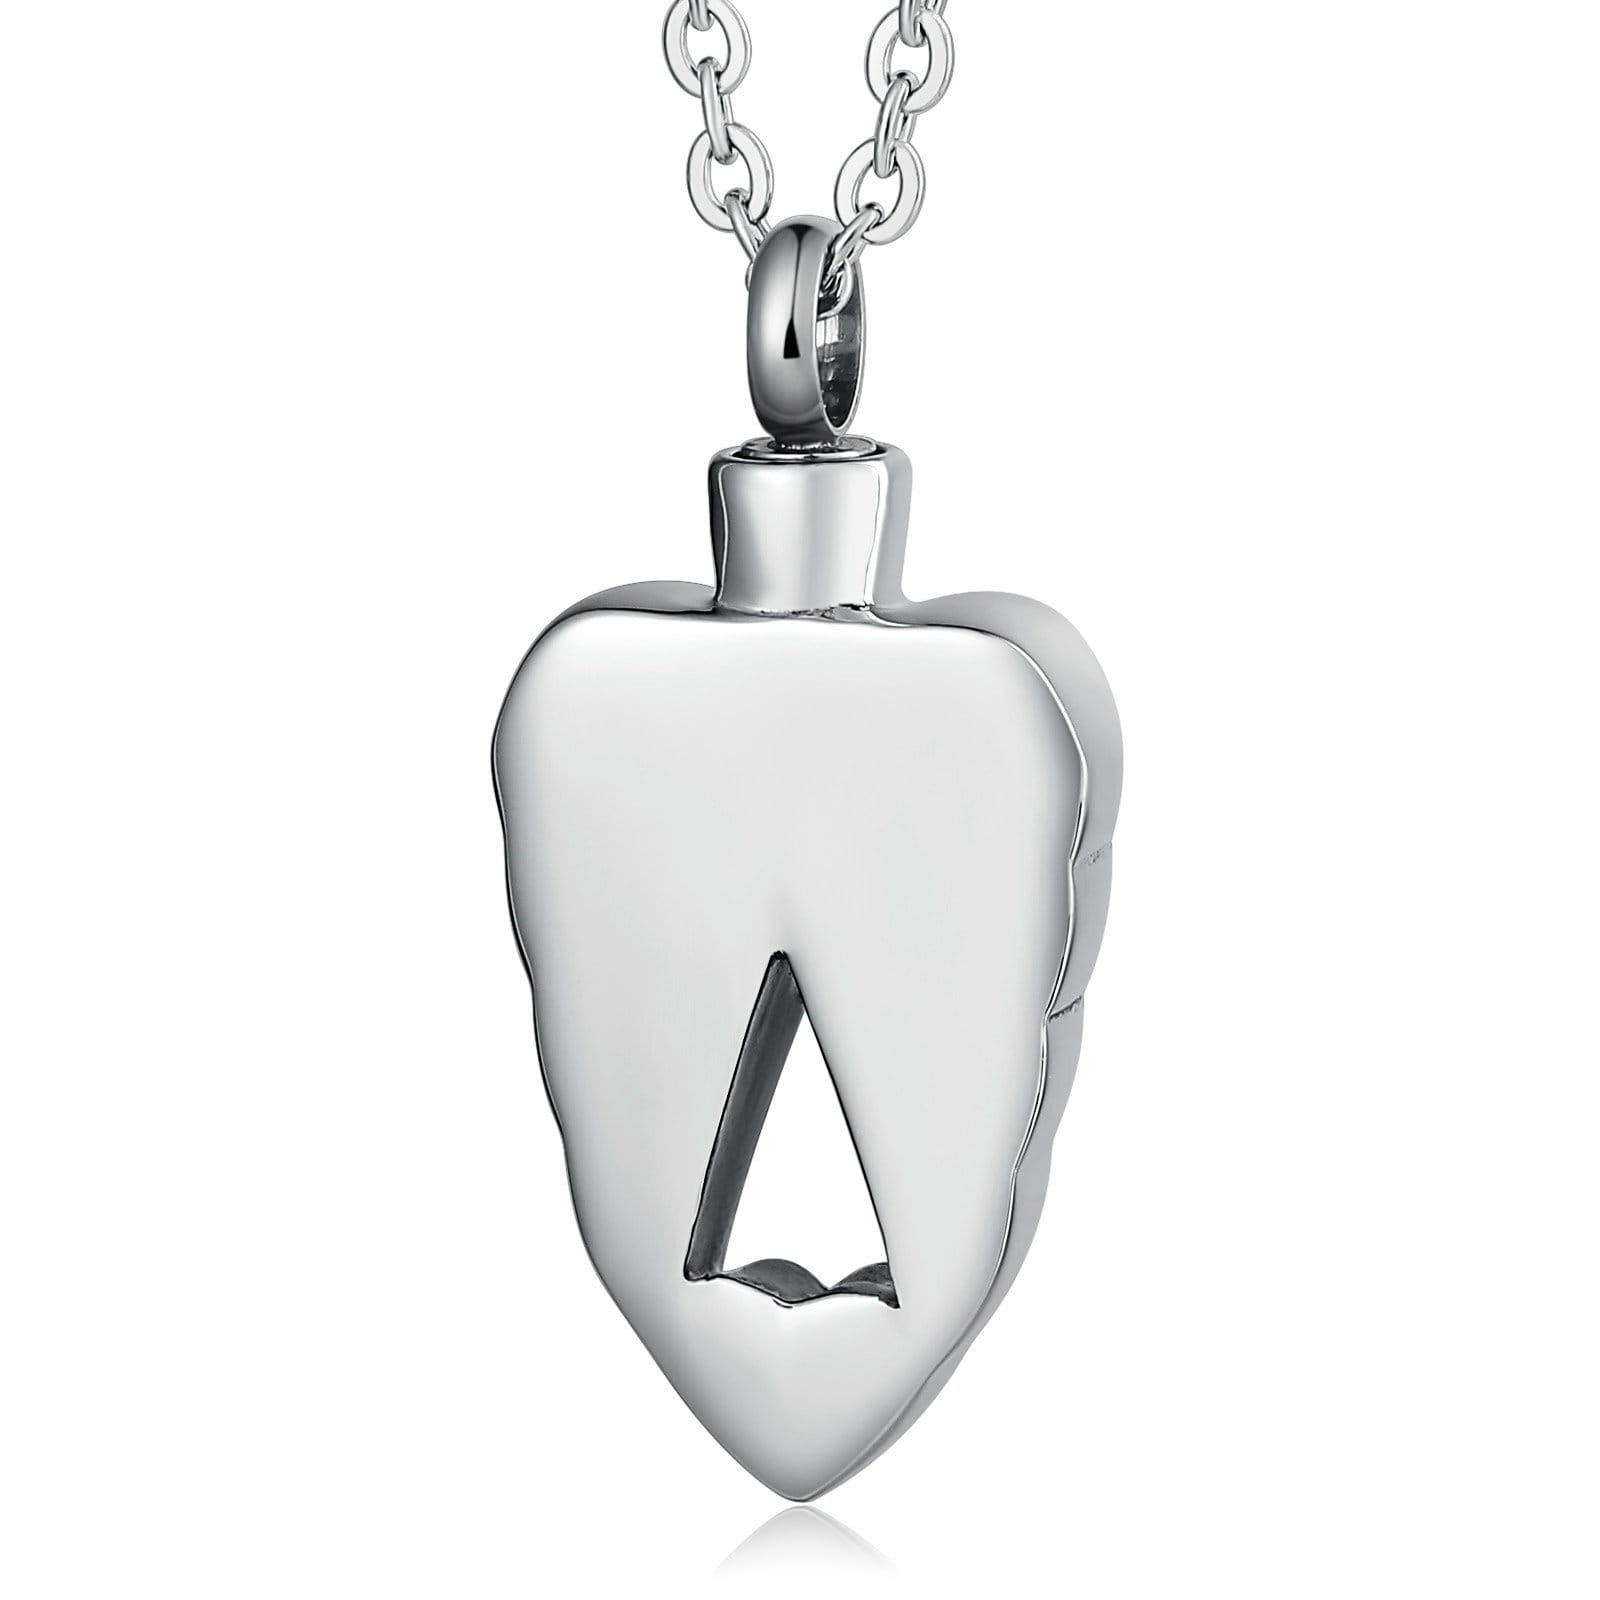 Ashes Necklace Keepsake Pendant Stainless Steel Heart Engravable 2 x 3.5cm